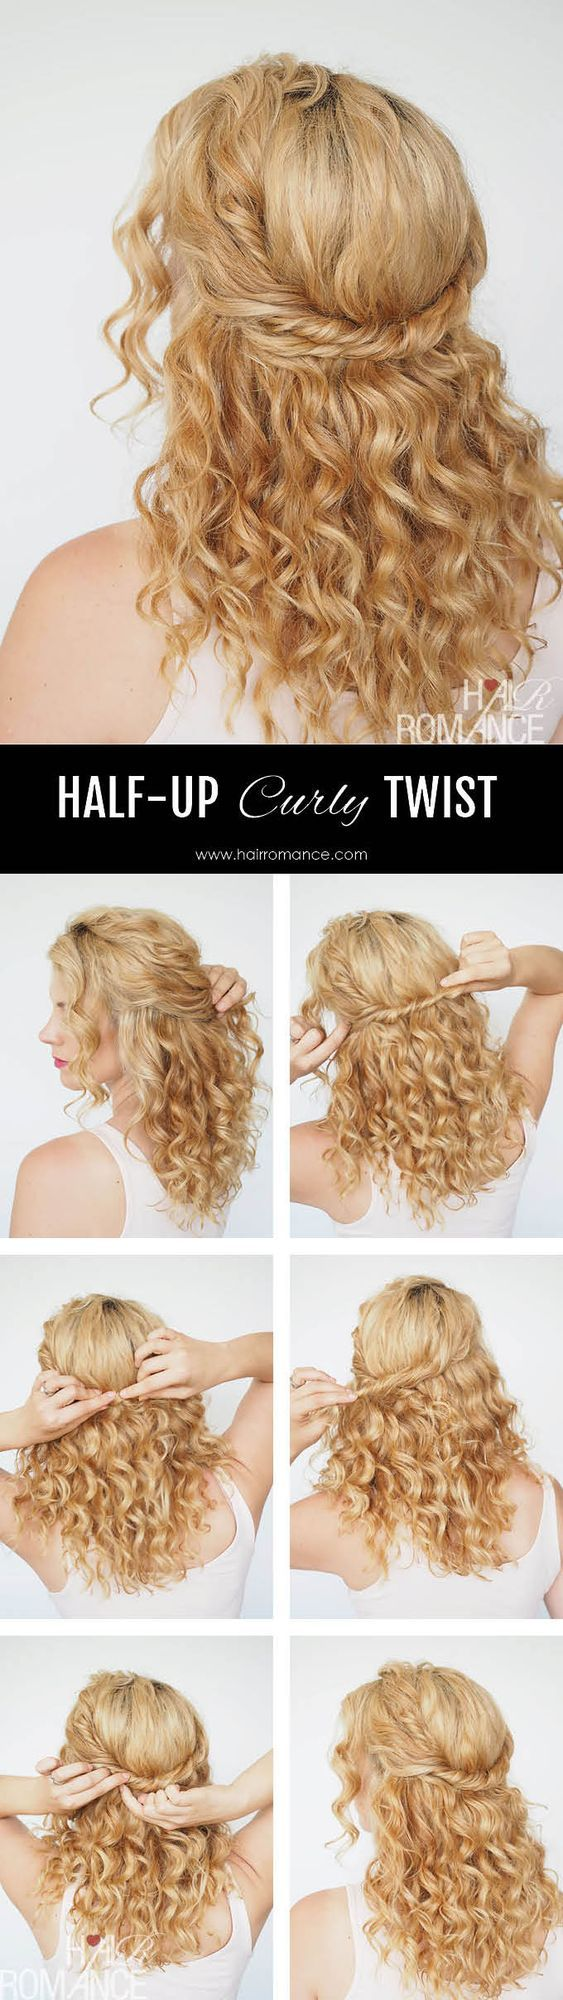 How To Do Curly Hair Styles Best 25 Curly Hairstyles Ideas On Pinterest  Easy Curly .